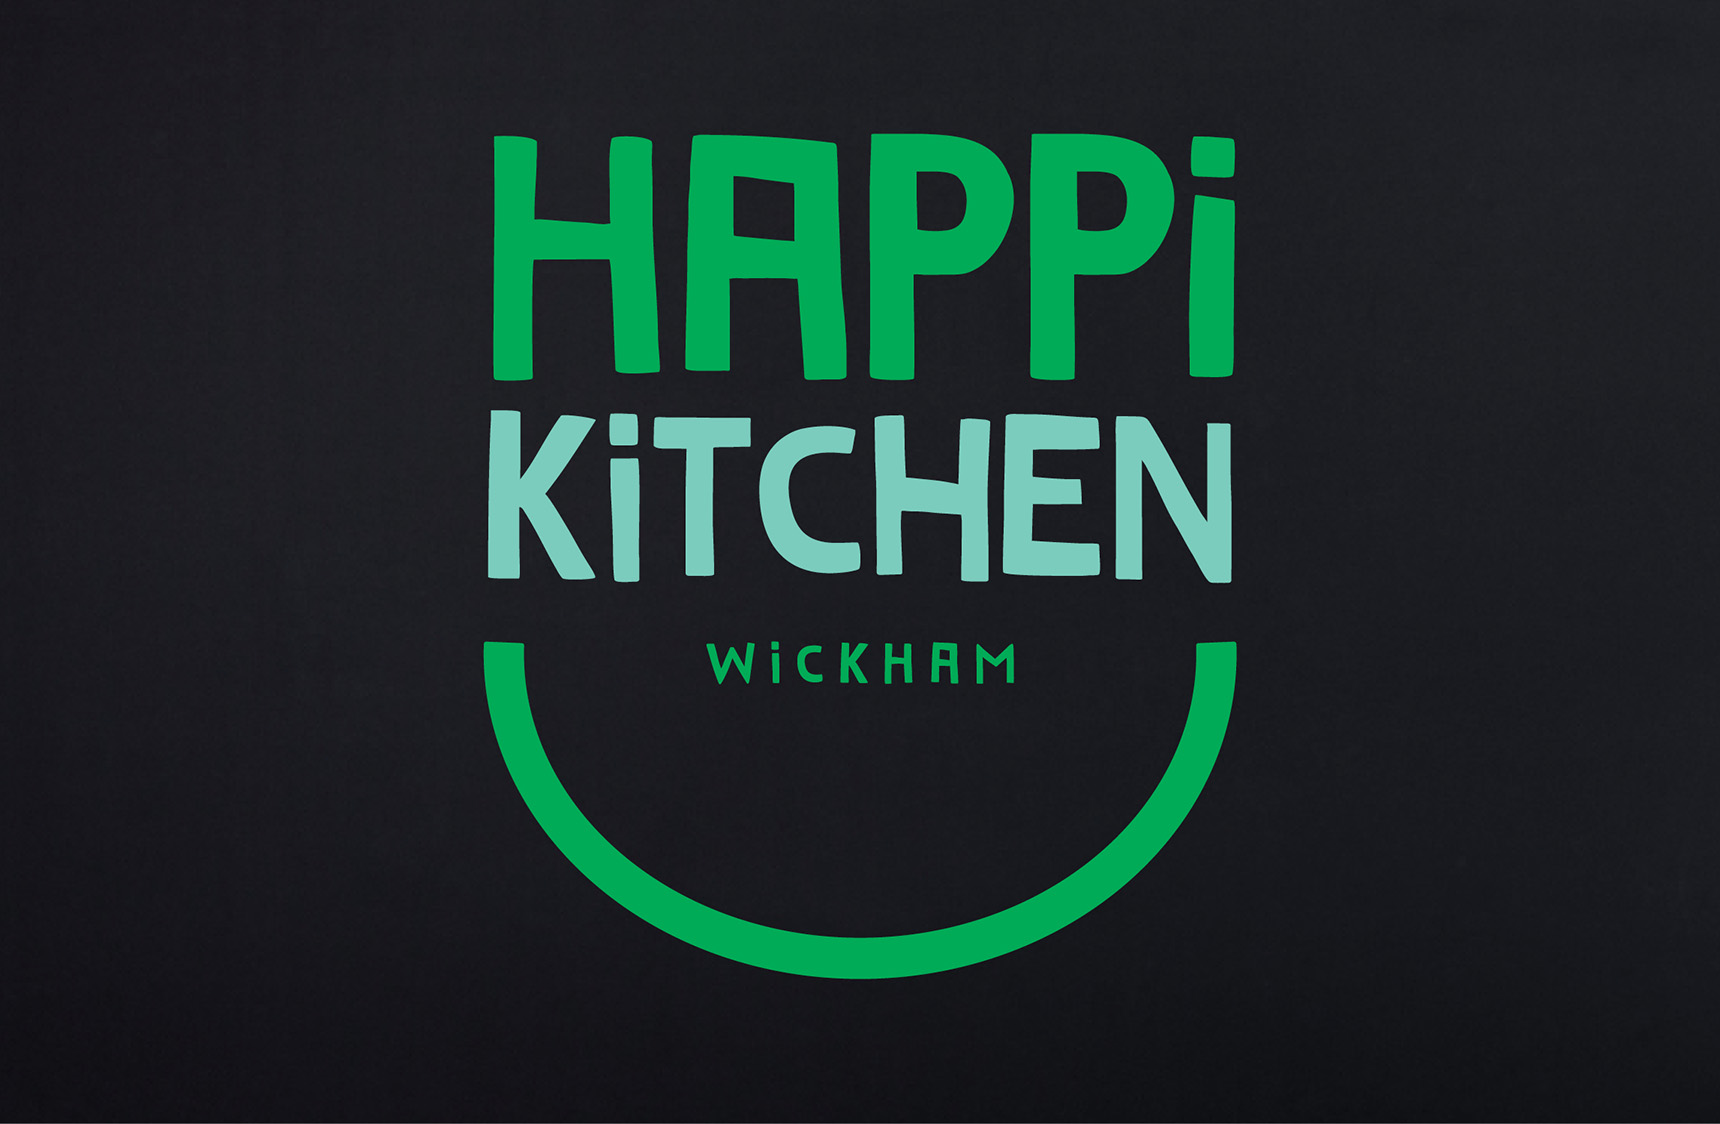 mjk_happi-kitchen_01